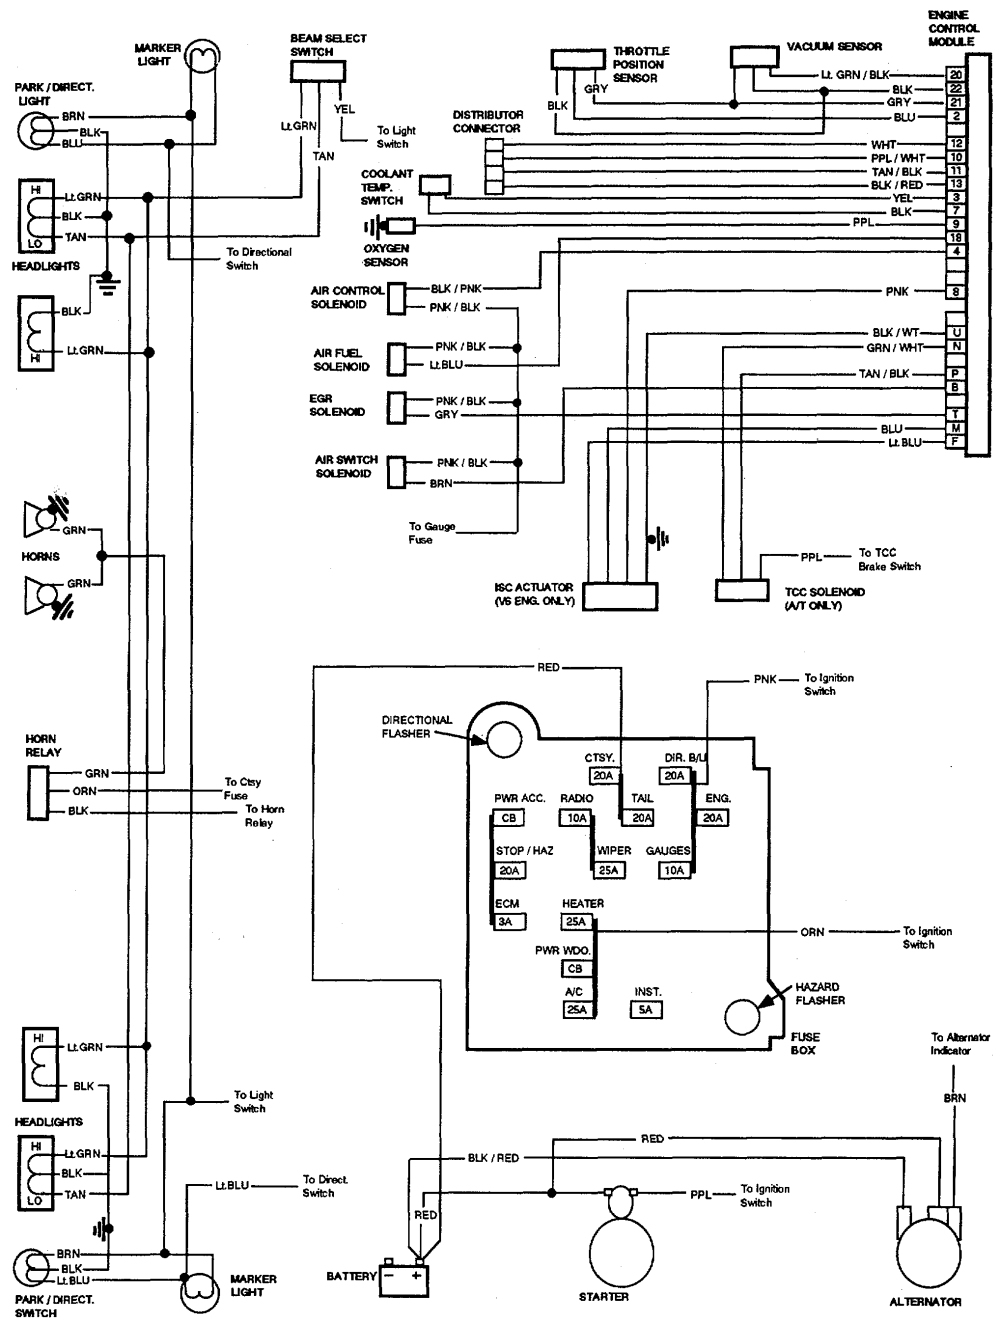 Wiring Diagram For 87 Chevy Monte Carlo - Data Wiring Diagram Today - Nest 2.8 Wiring Diagram